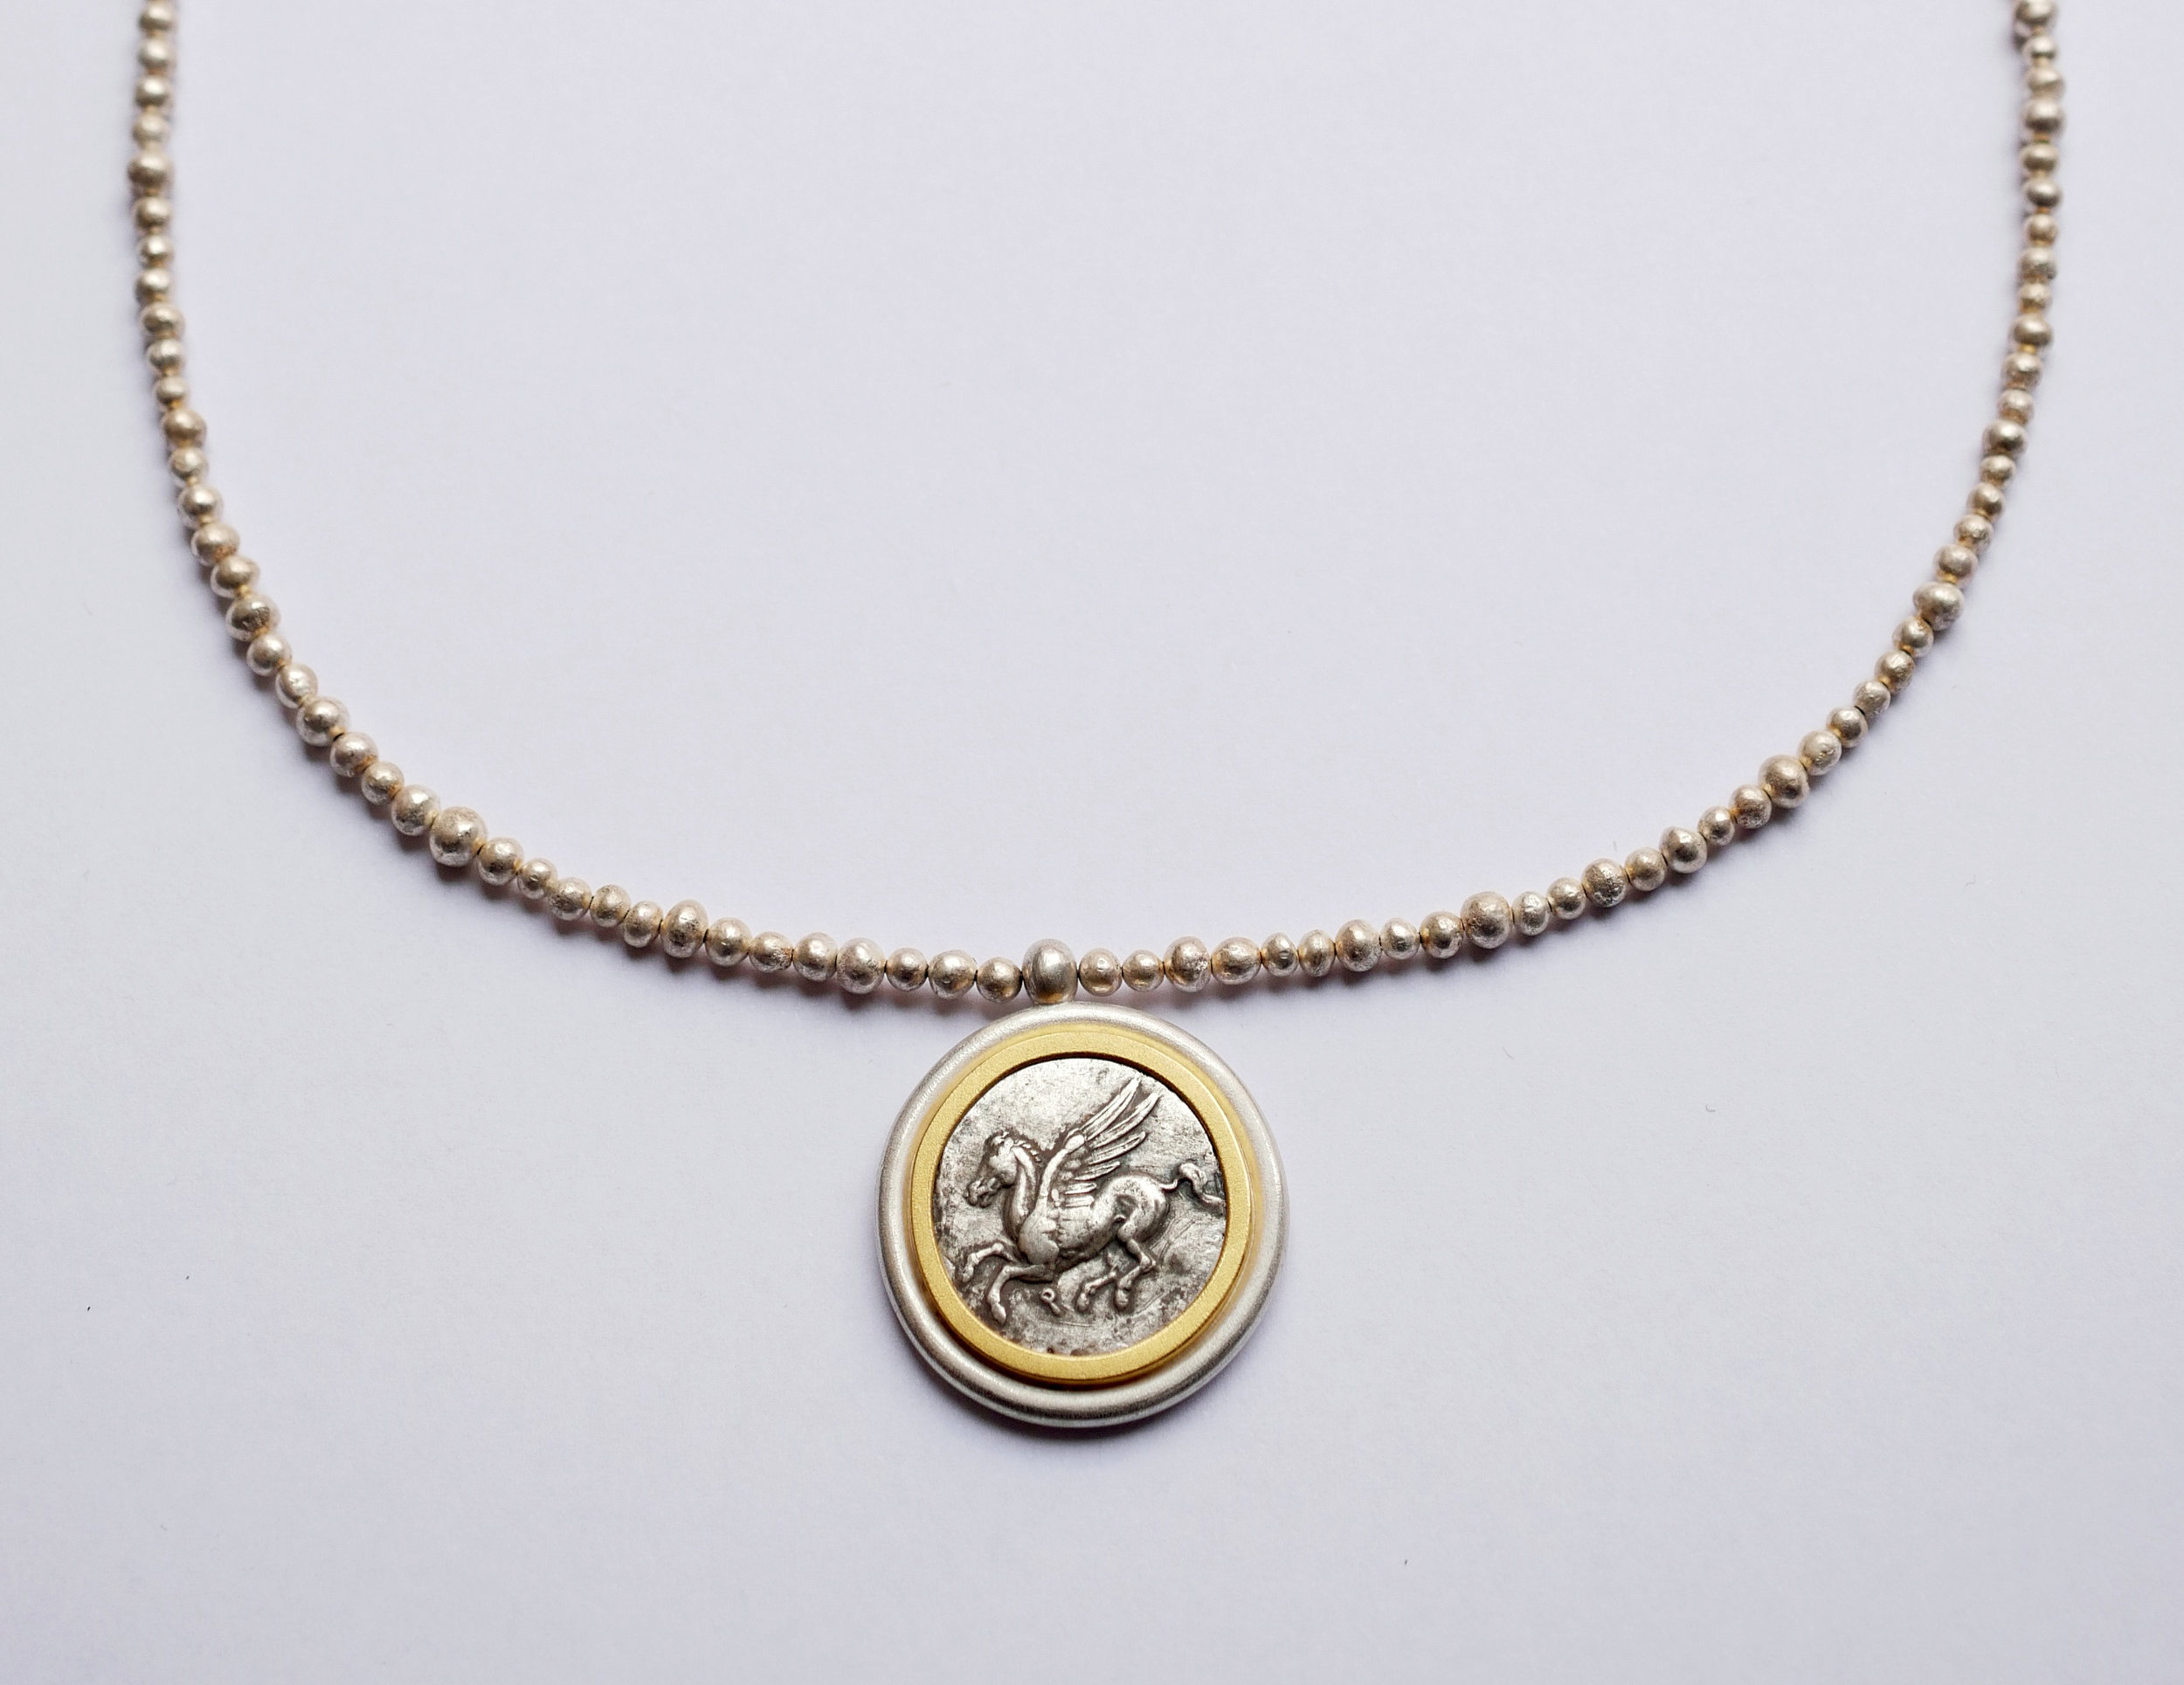 necklace_greekcoin_pegasus1.jpg